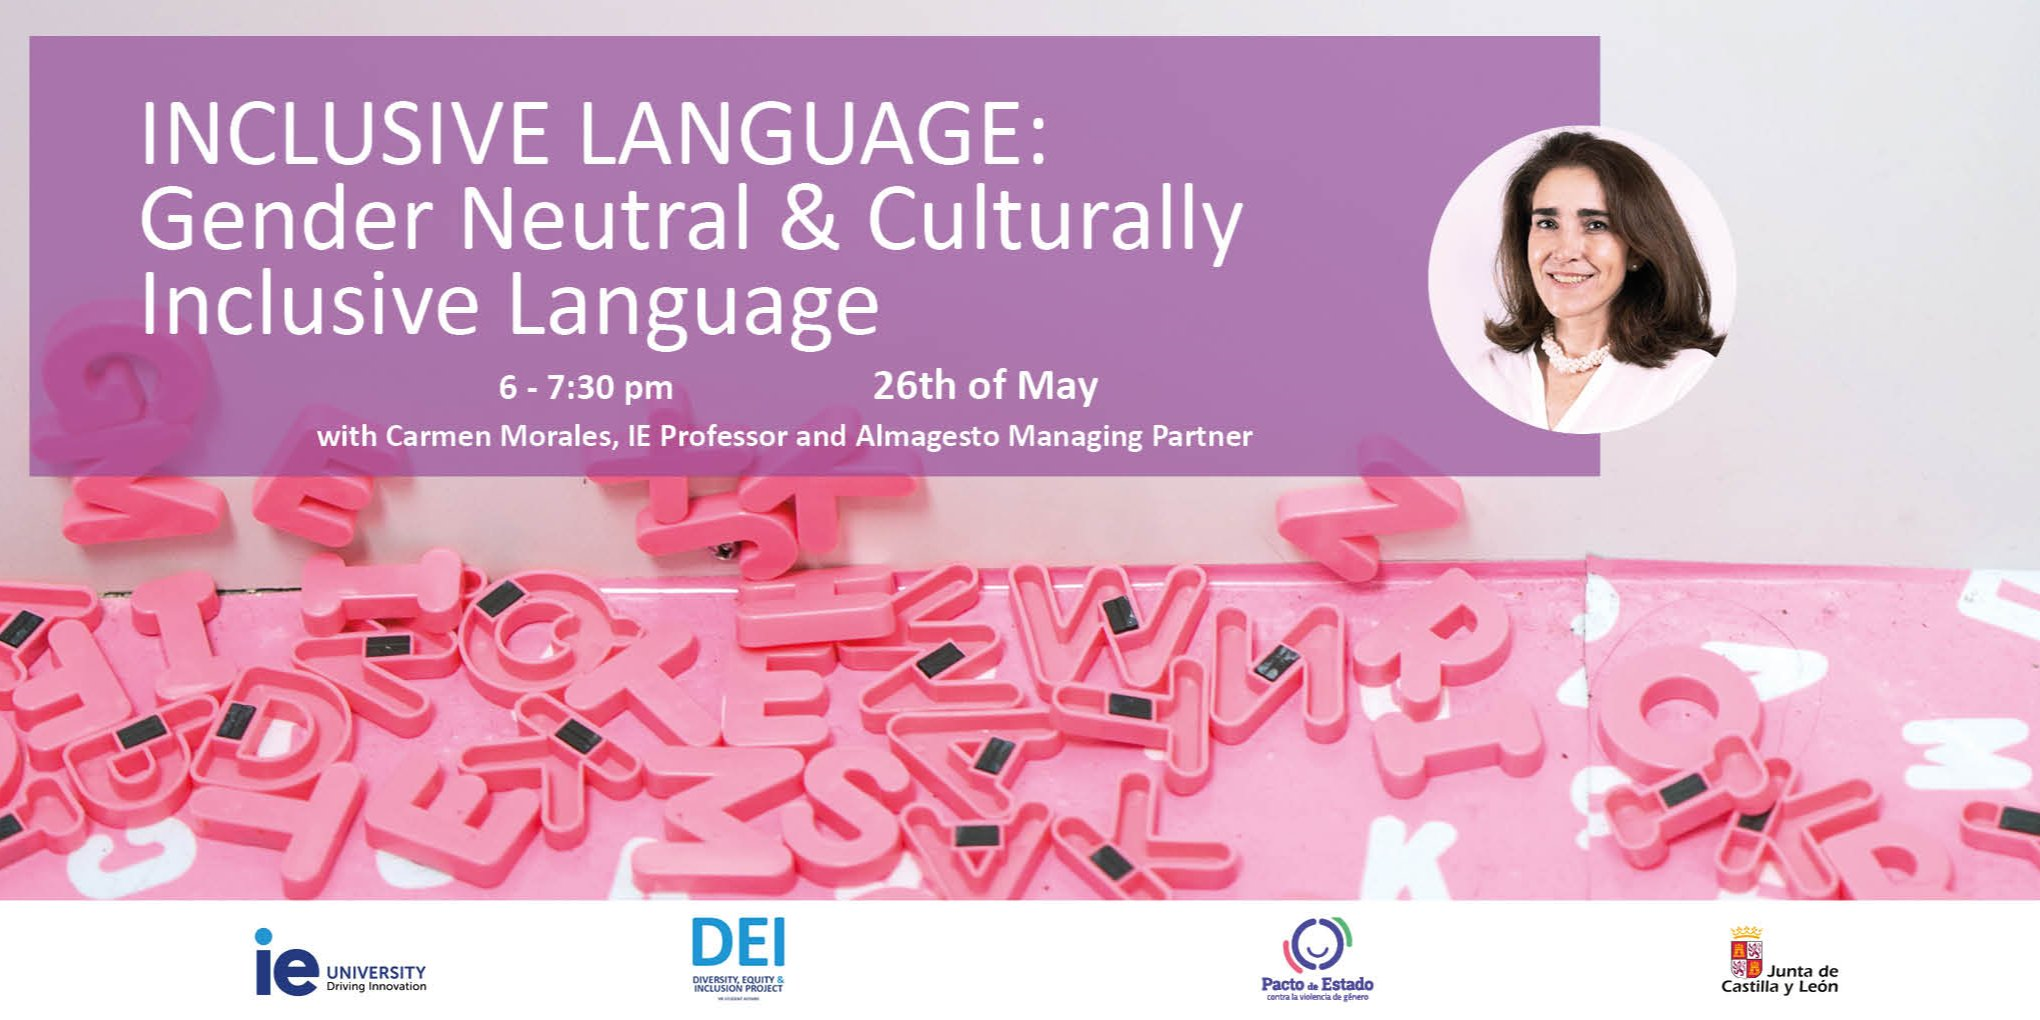 Inclusive Language: Gender Neutral Language and Culturally Inclusive Language